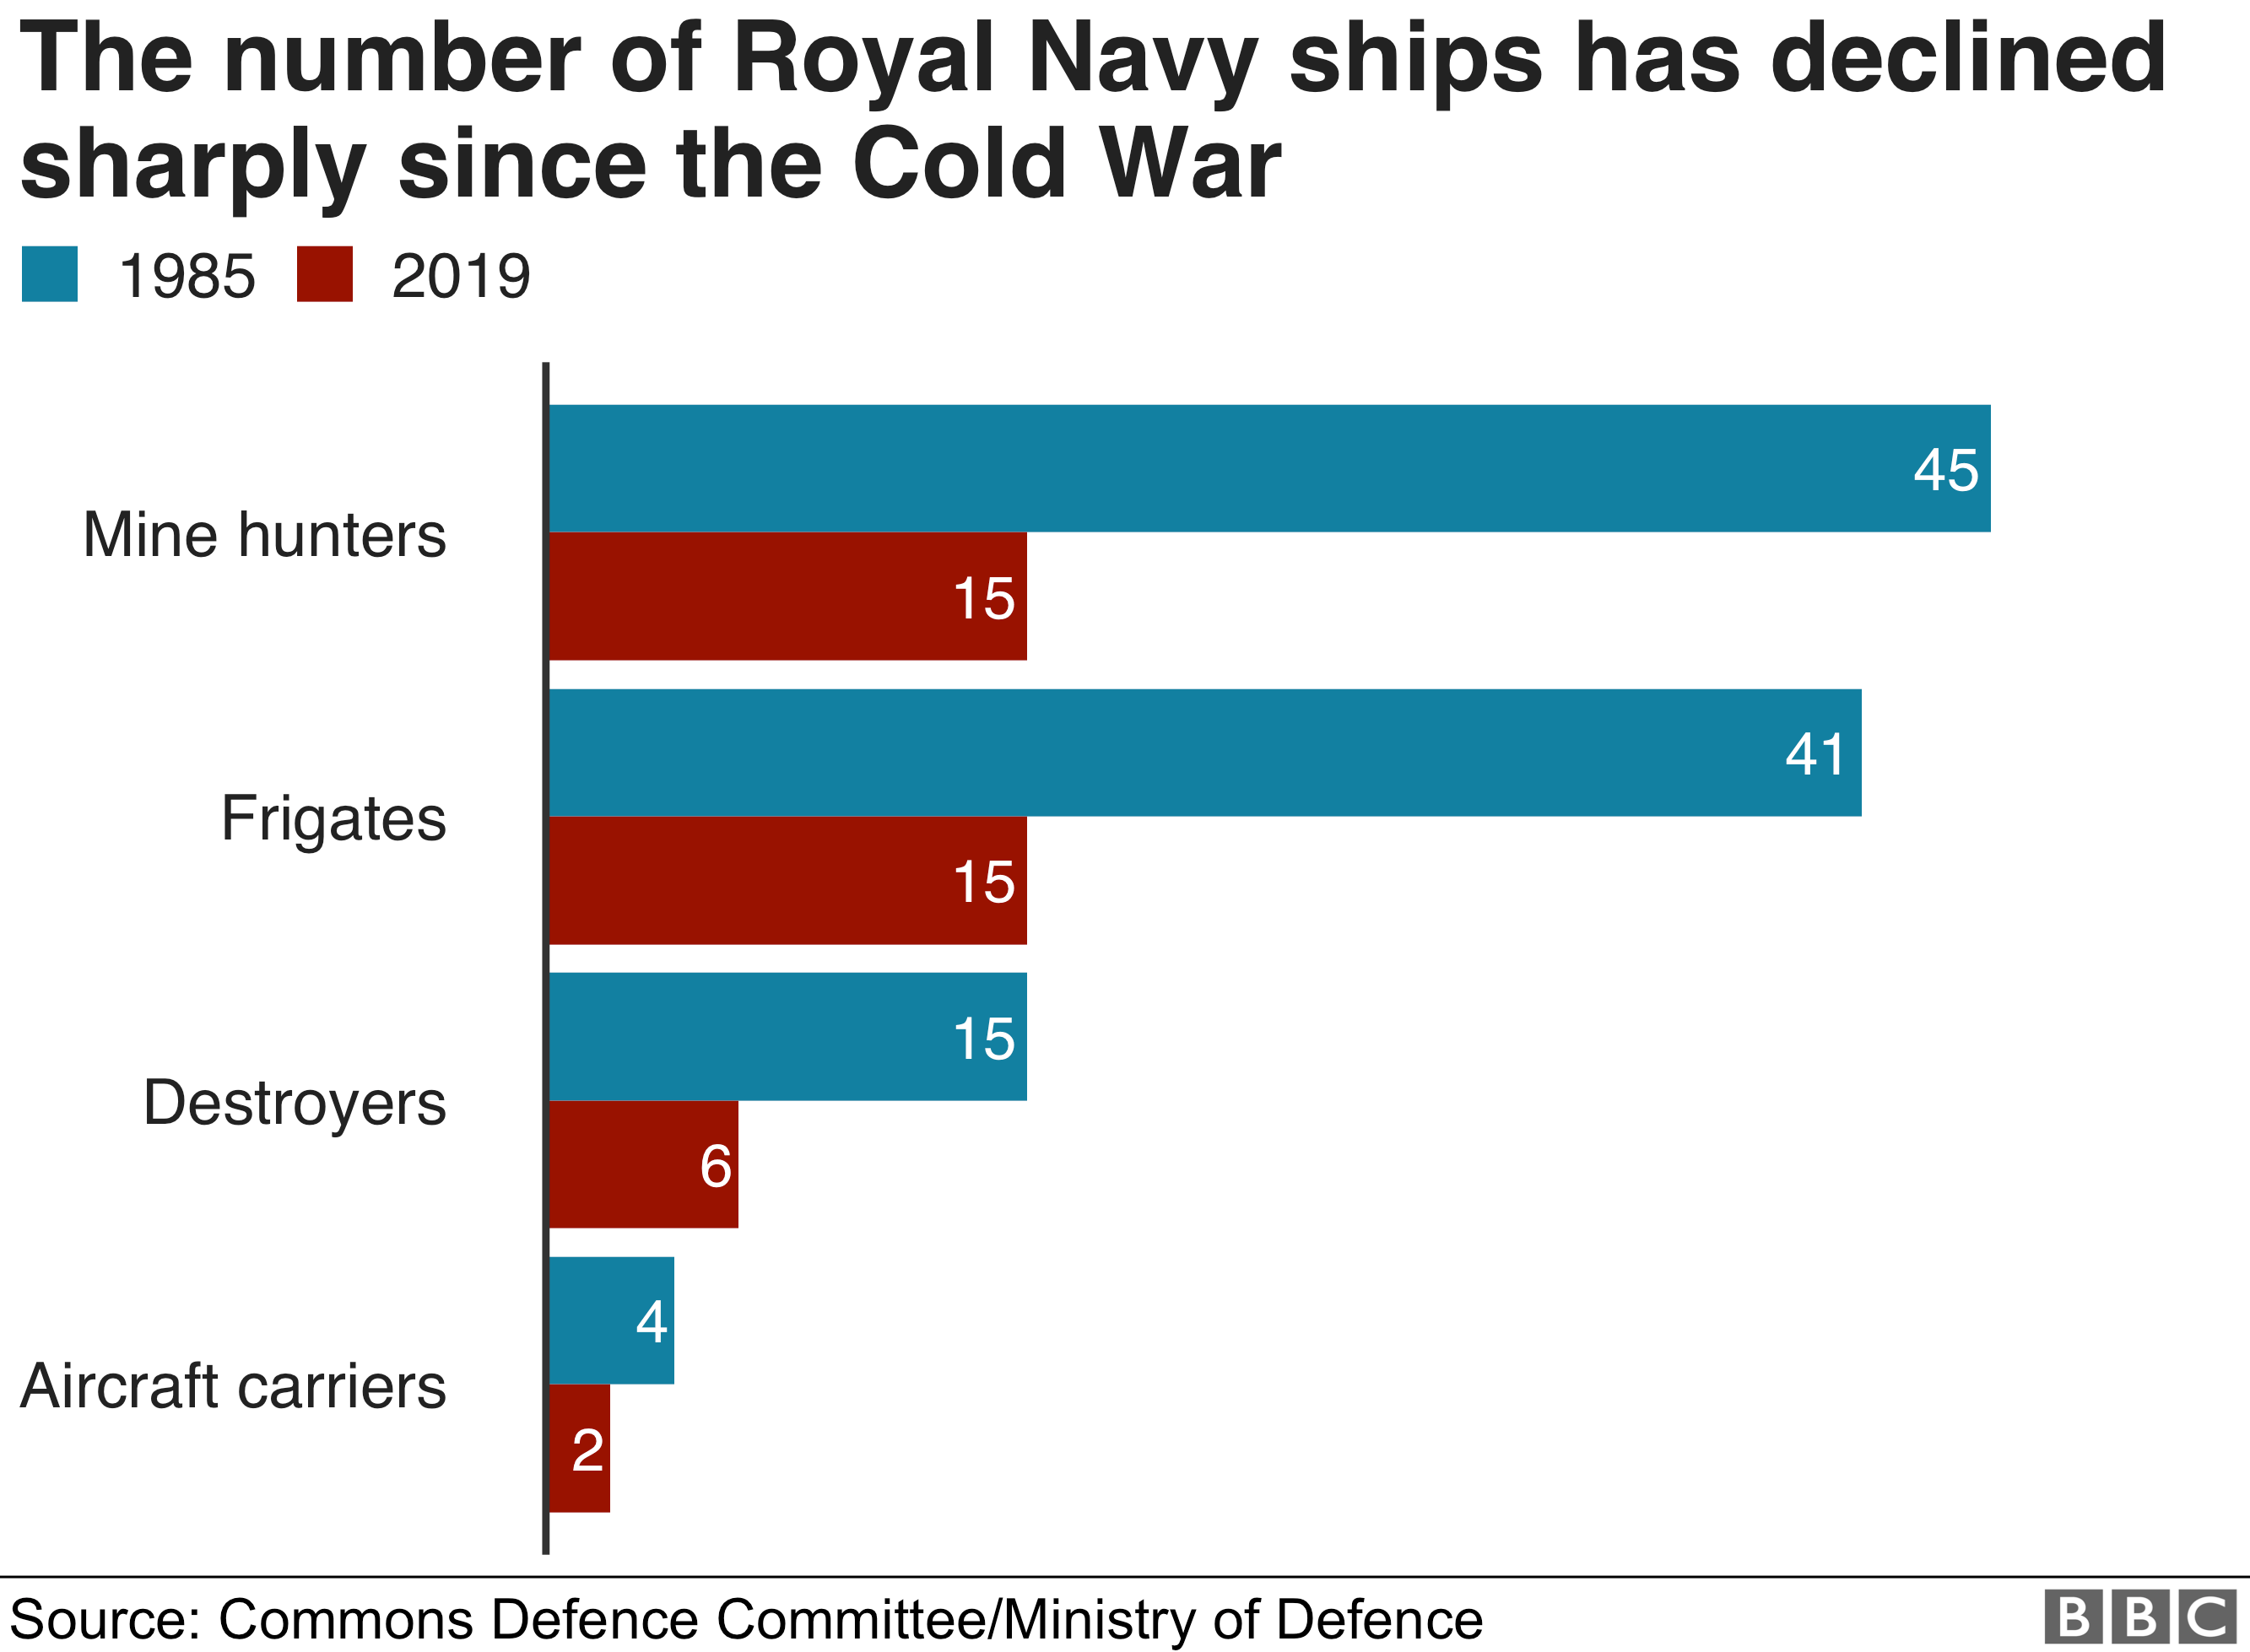 Graphic showing the number of Royal Navy ships now compared to 1985